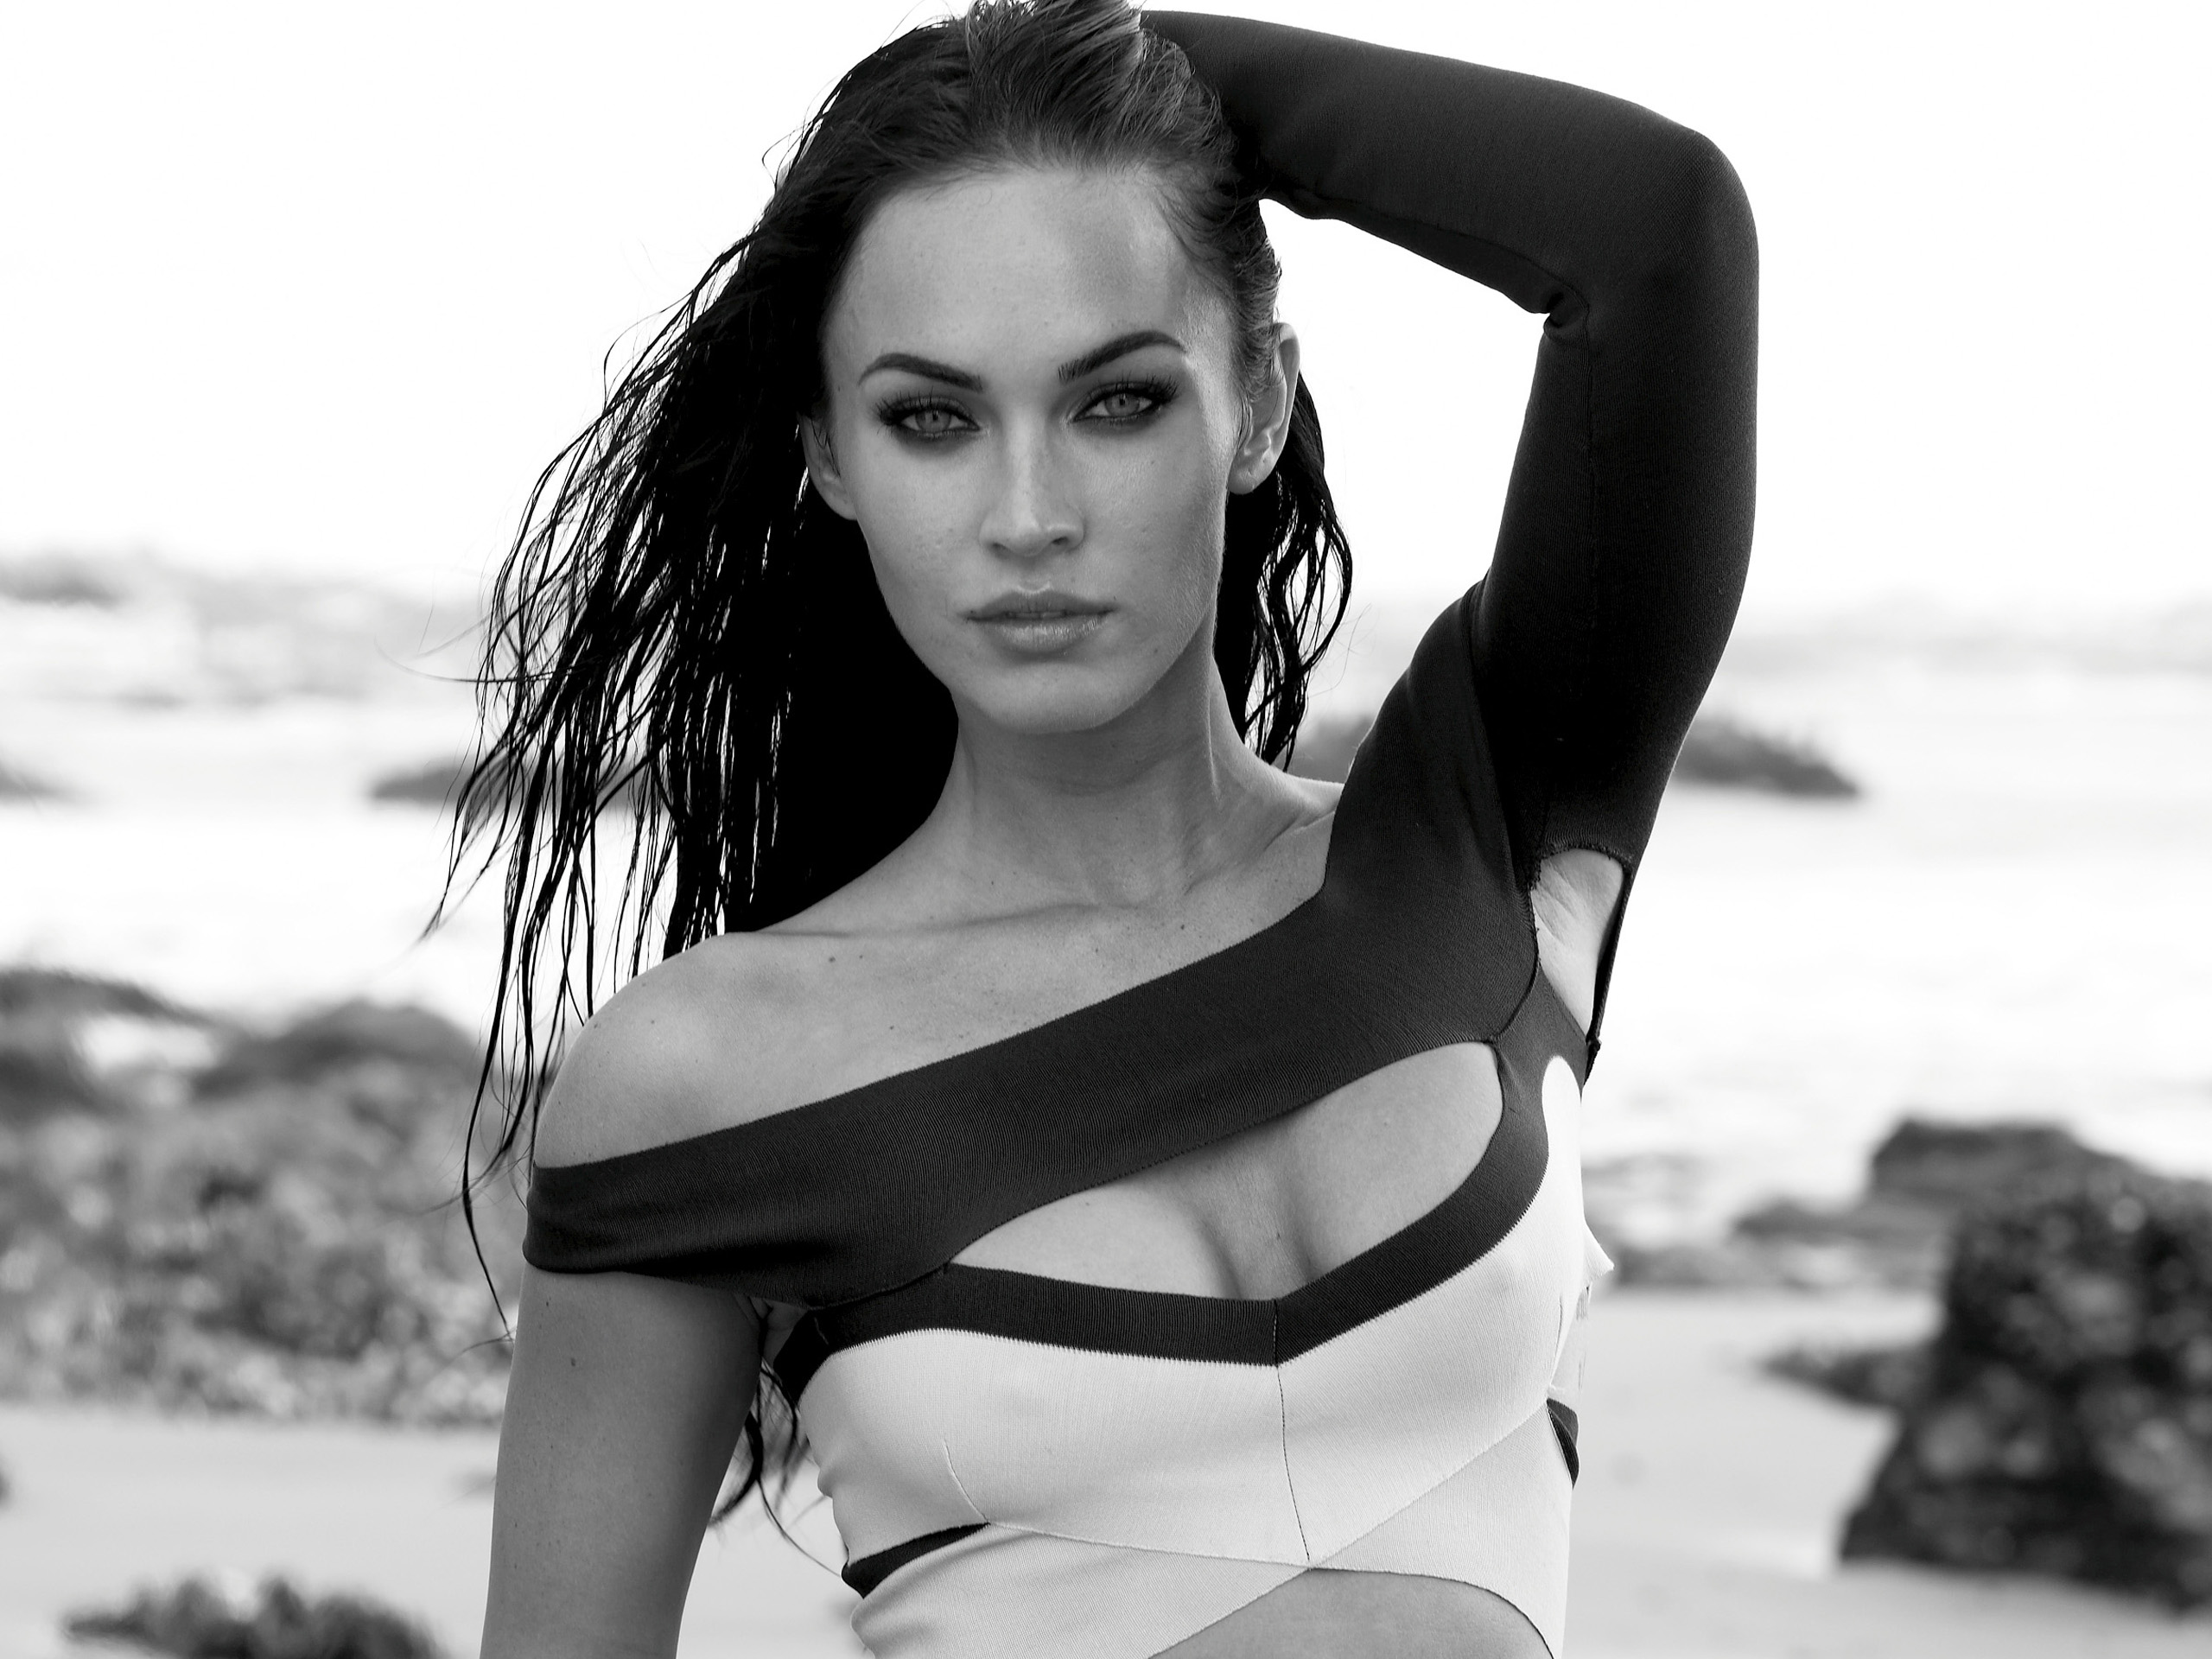 Megan Fox Black & White